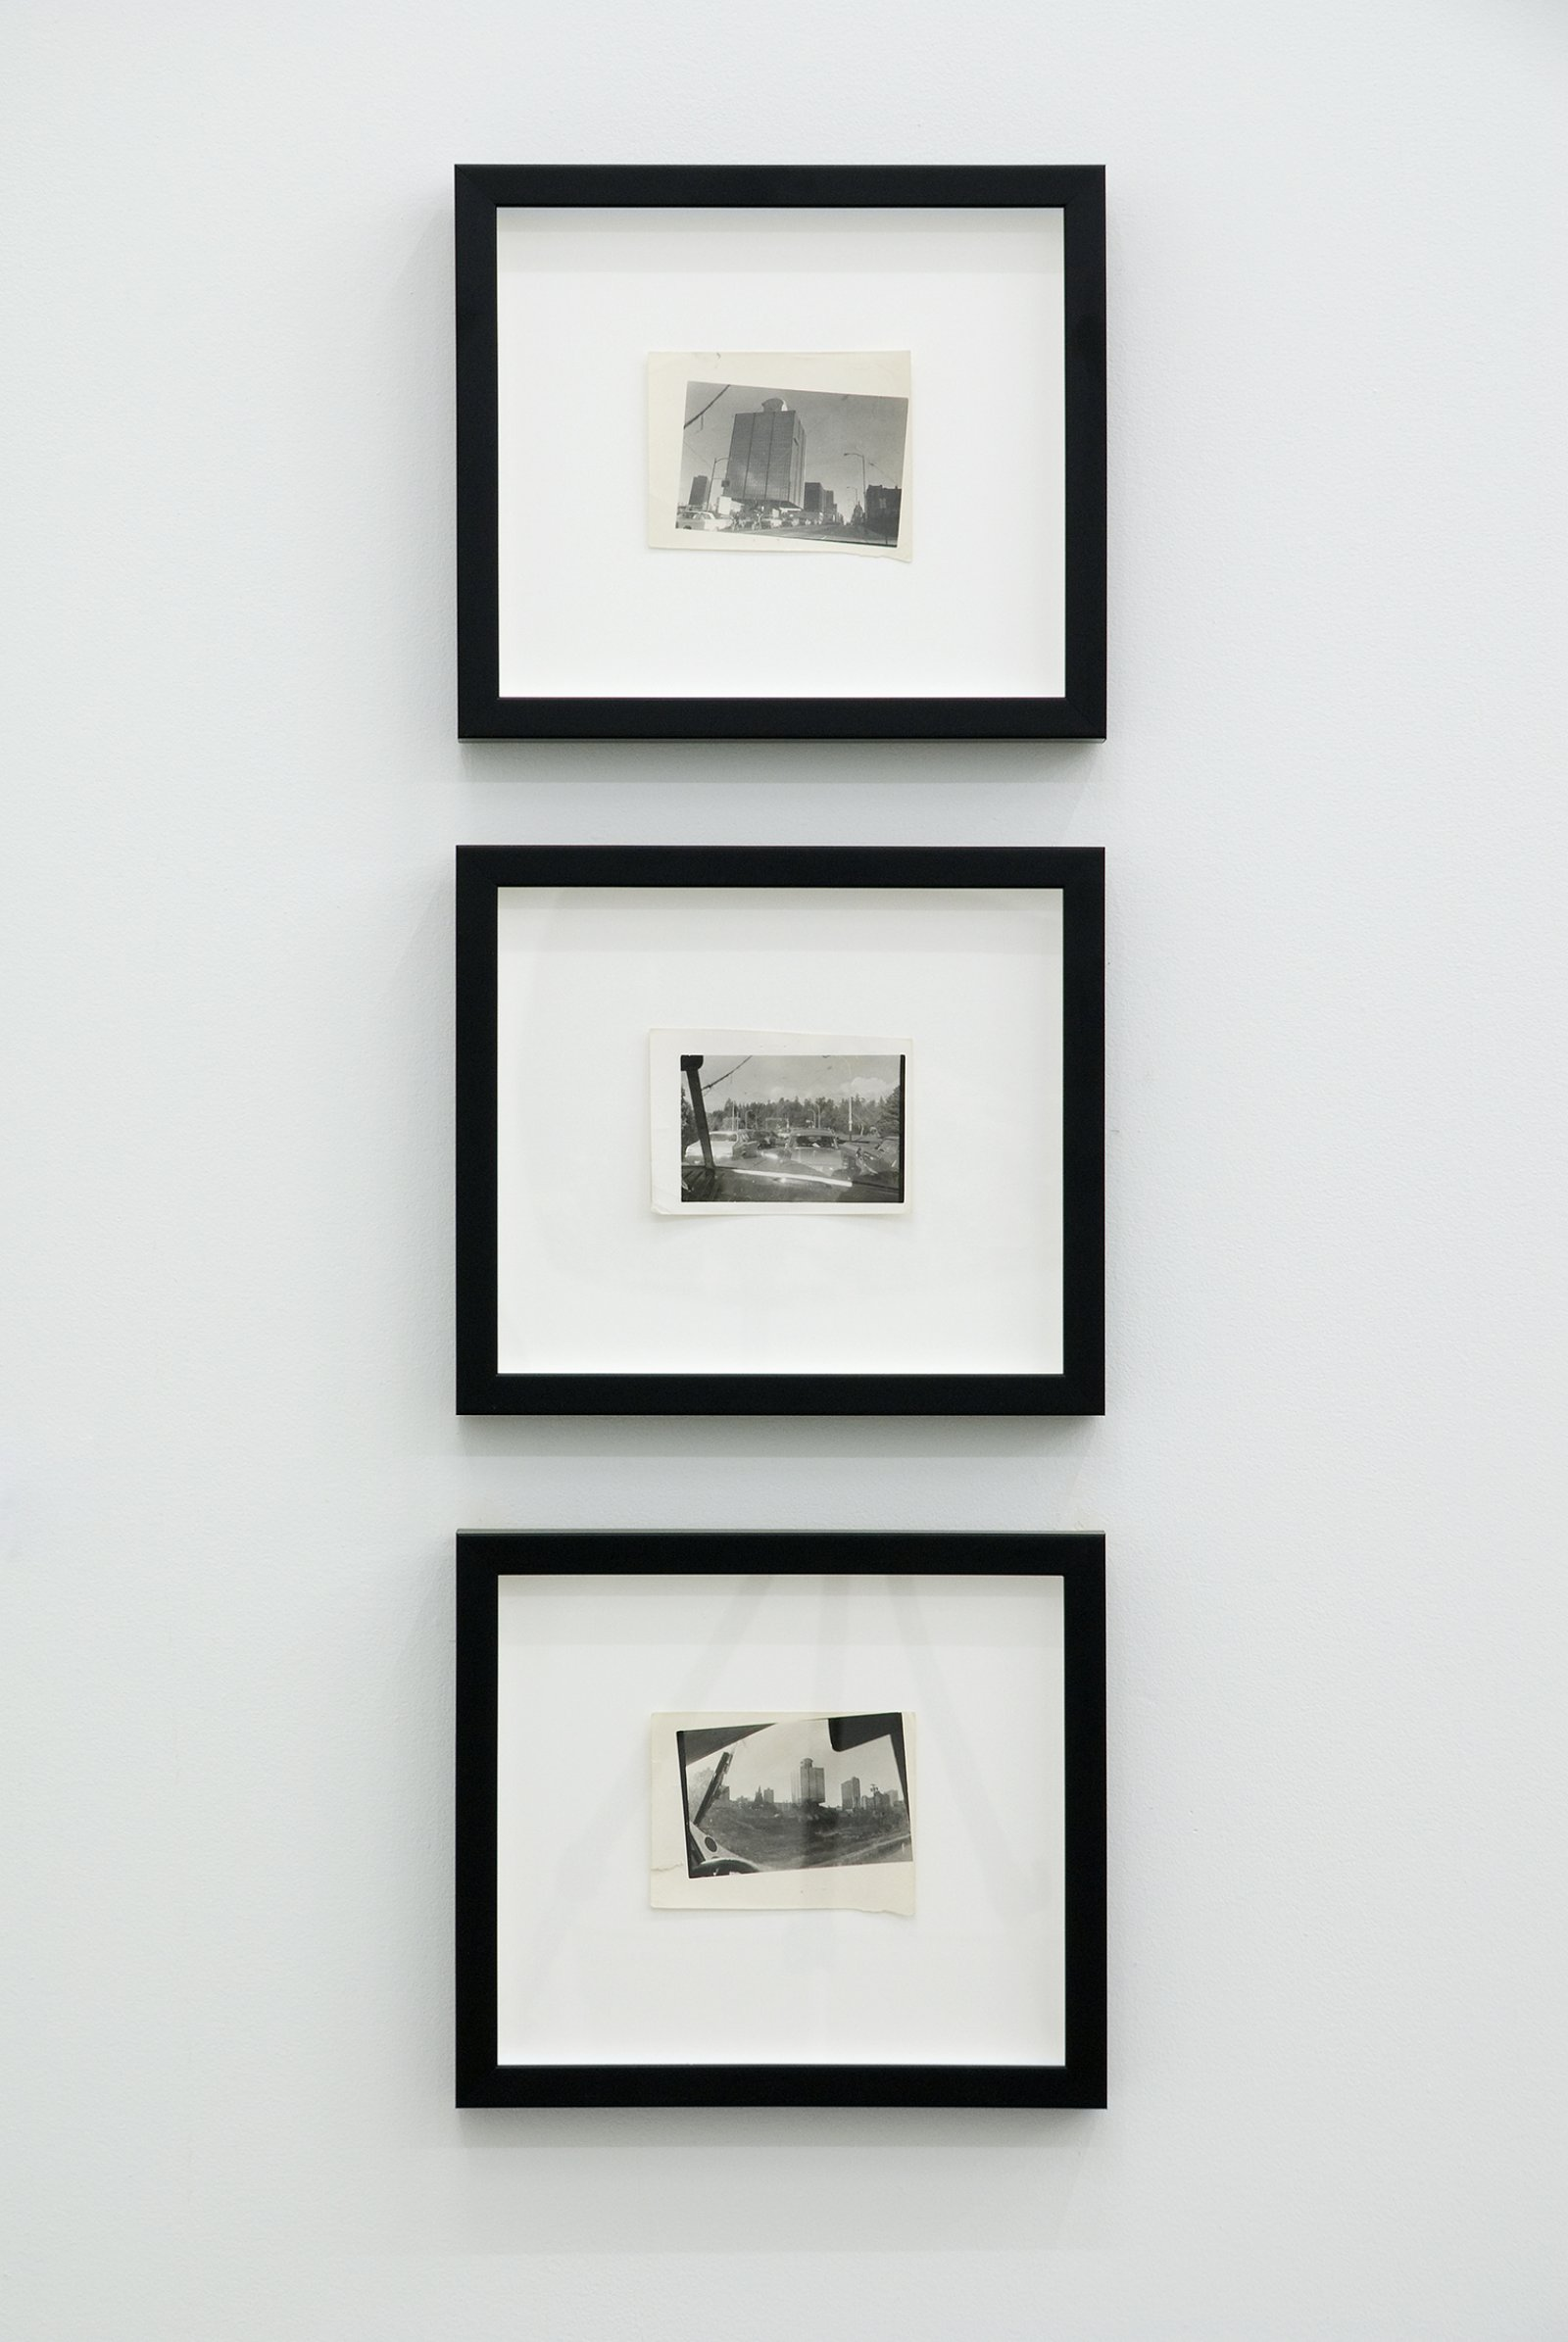 Ian Wallace, Untitled, 1969, black and white photographs, each 4 x 5 (9 x 12 cm) by Ian Wallace